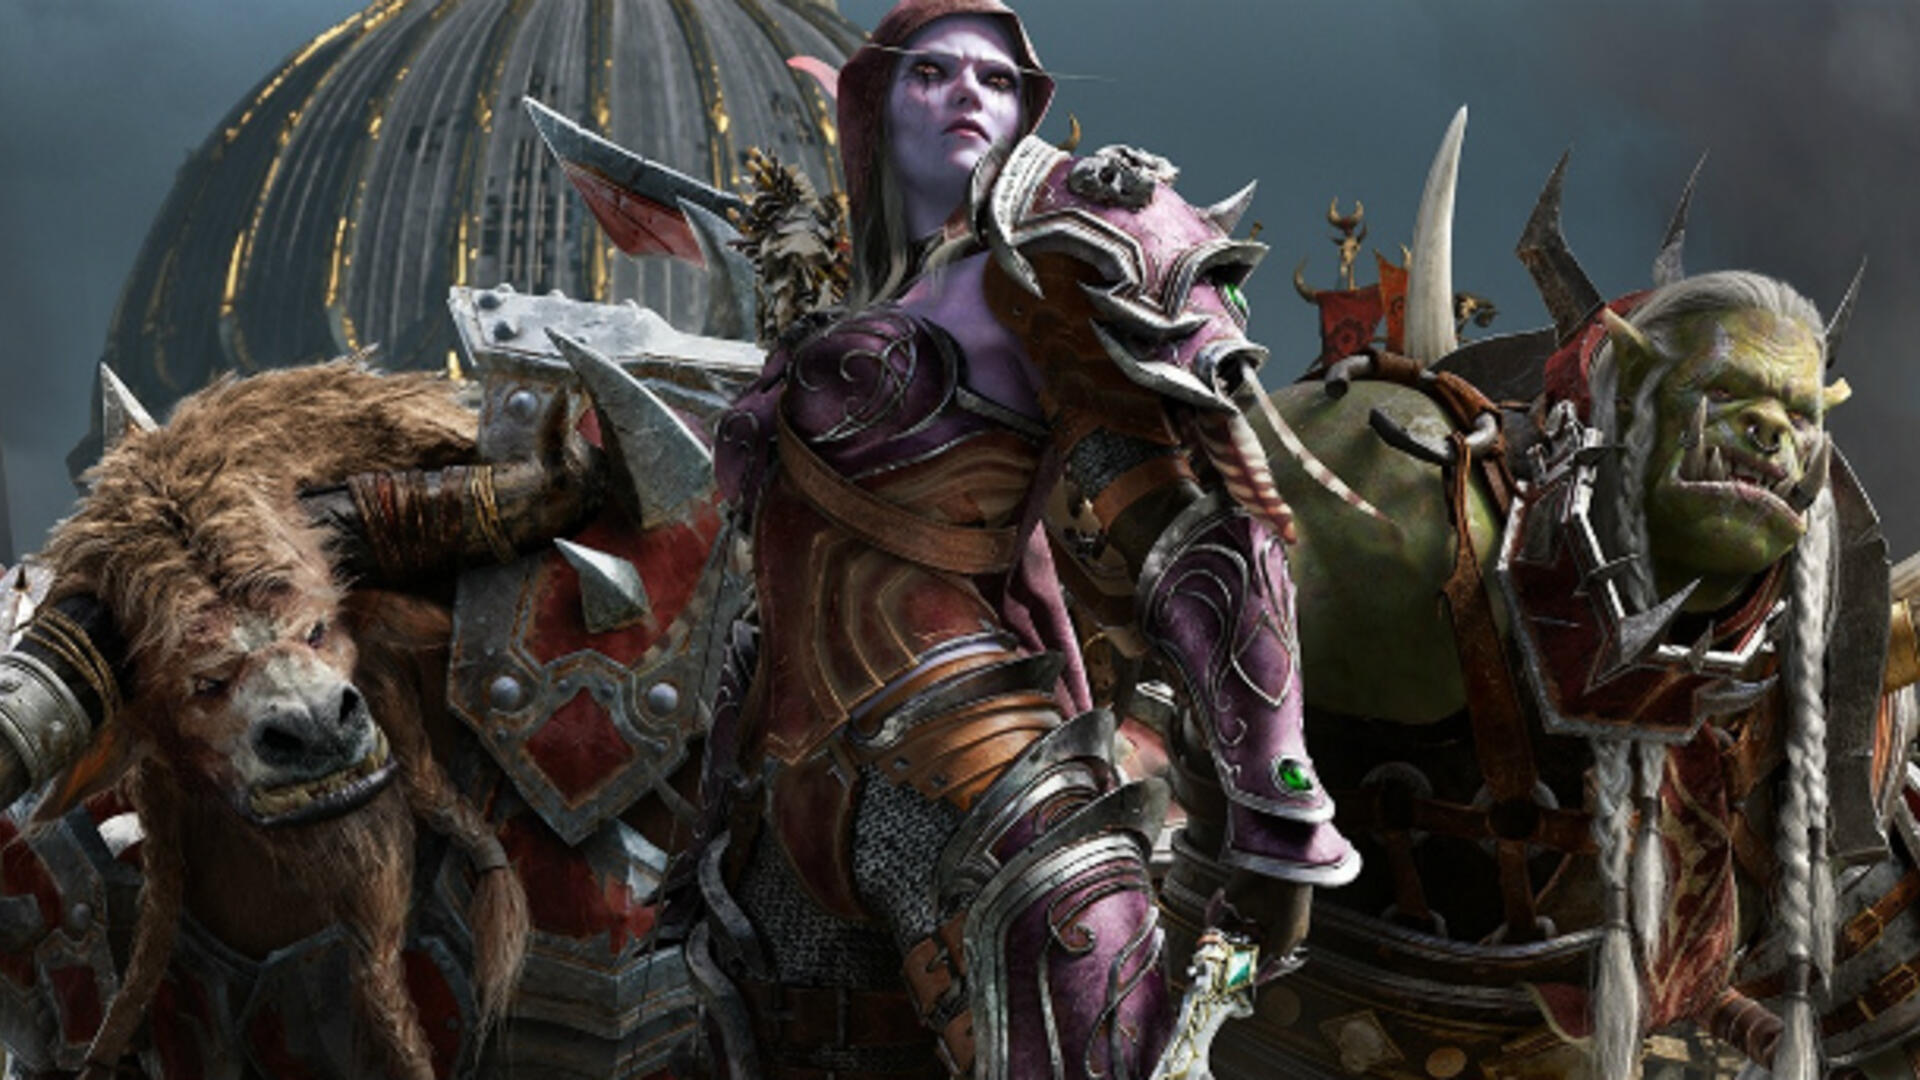 WoW: Battle for Azeroth Devs Promise Deeper Flexibility and Respec For Azerite Armor